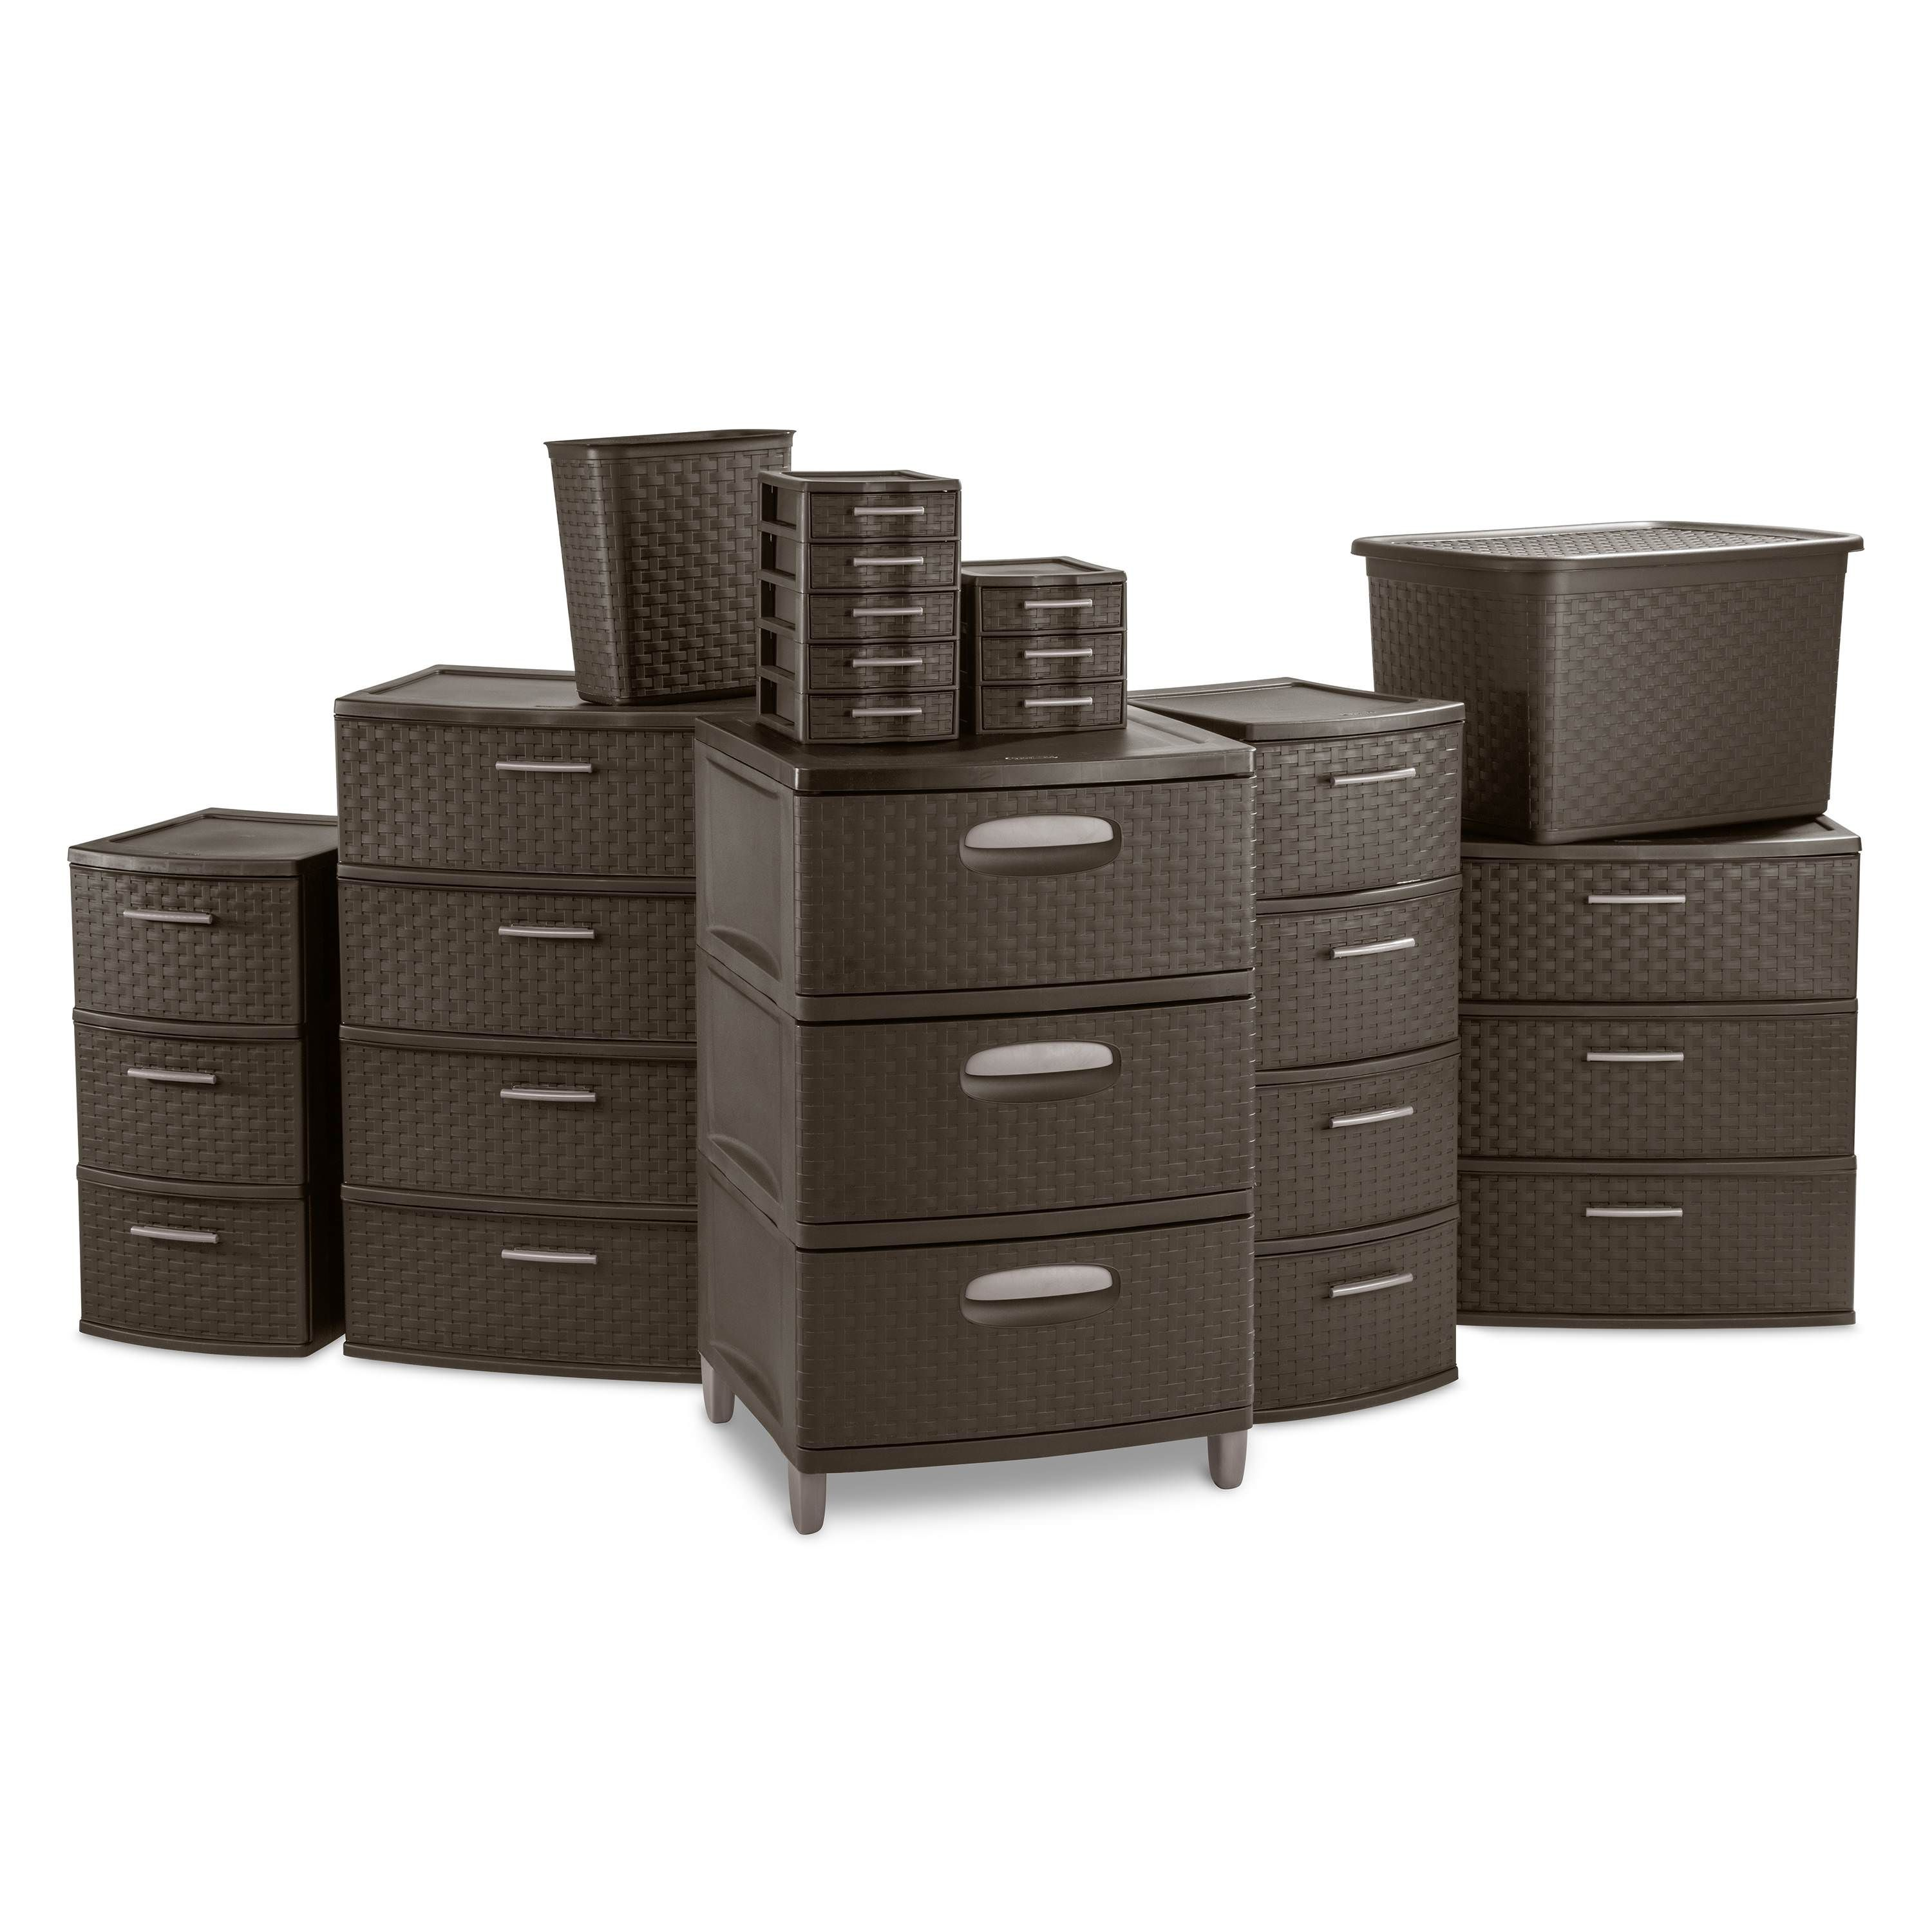 Home Sterilite Drawer Unit Drawers